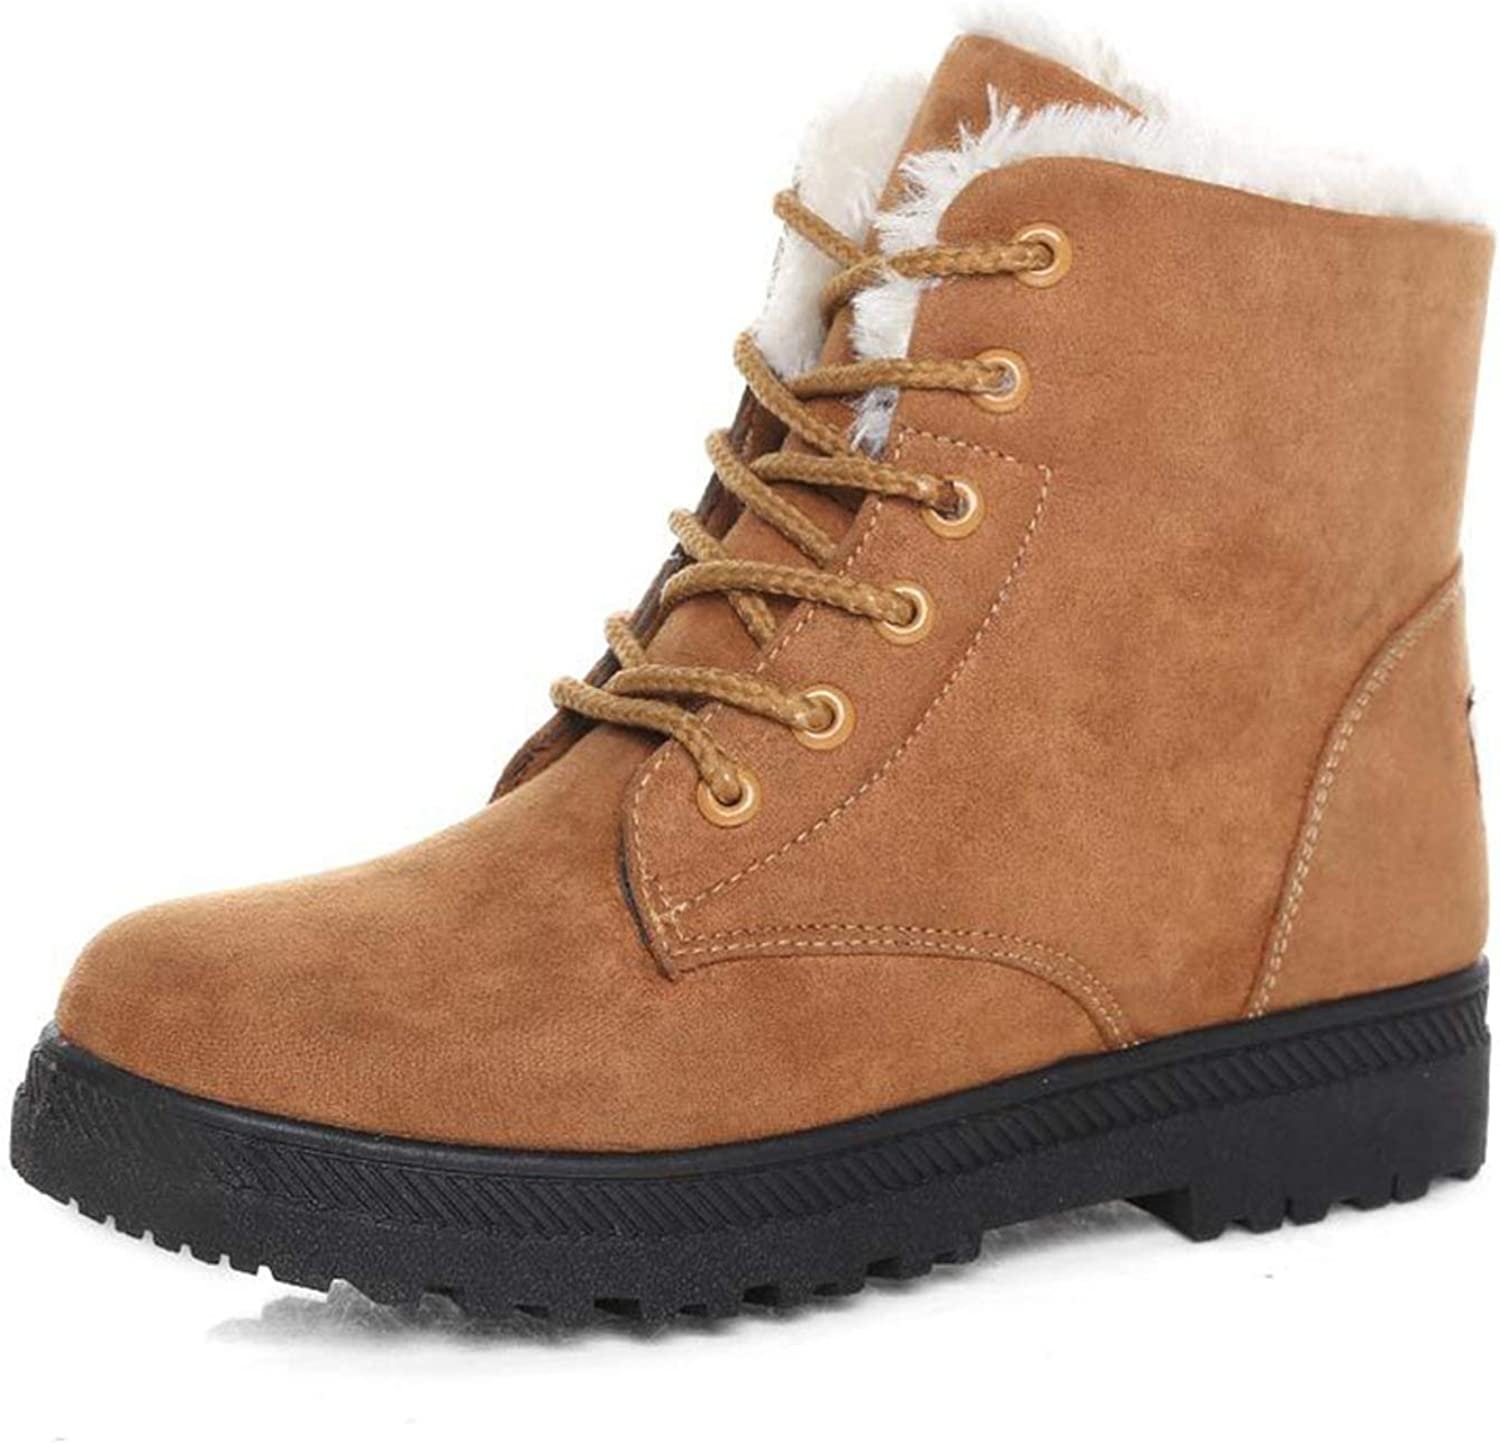 Pretty-sexy-toys Women Boots Plus Size 44 Snow Boot for Women Winter shoes Heels Winter Boots Ankle women Warm Plush Insole shoes Woman,Yellow,9